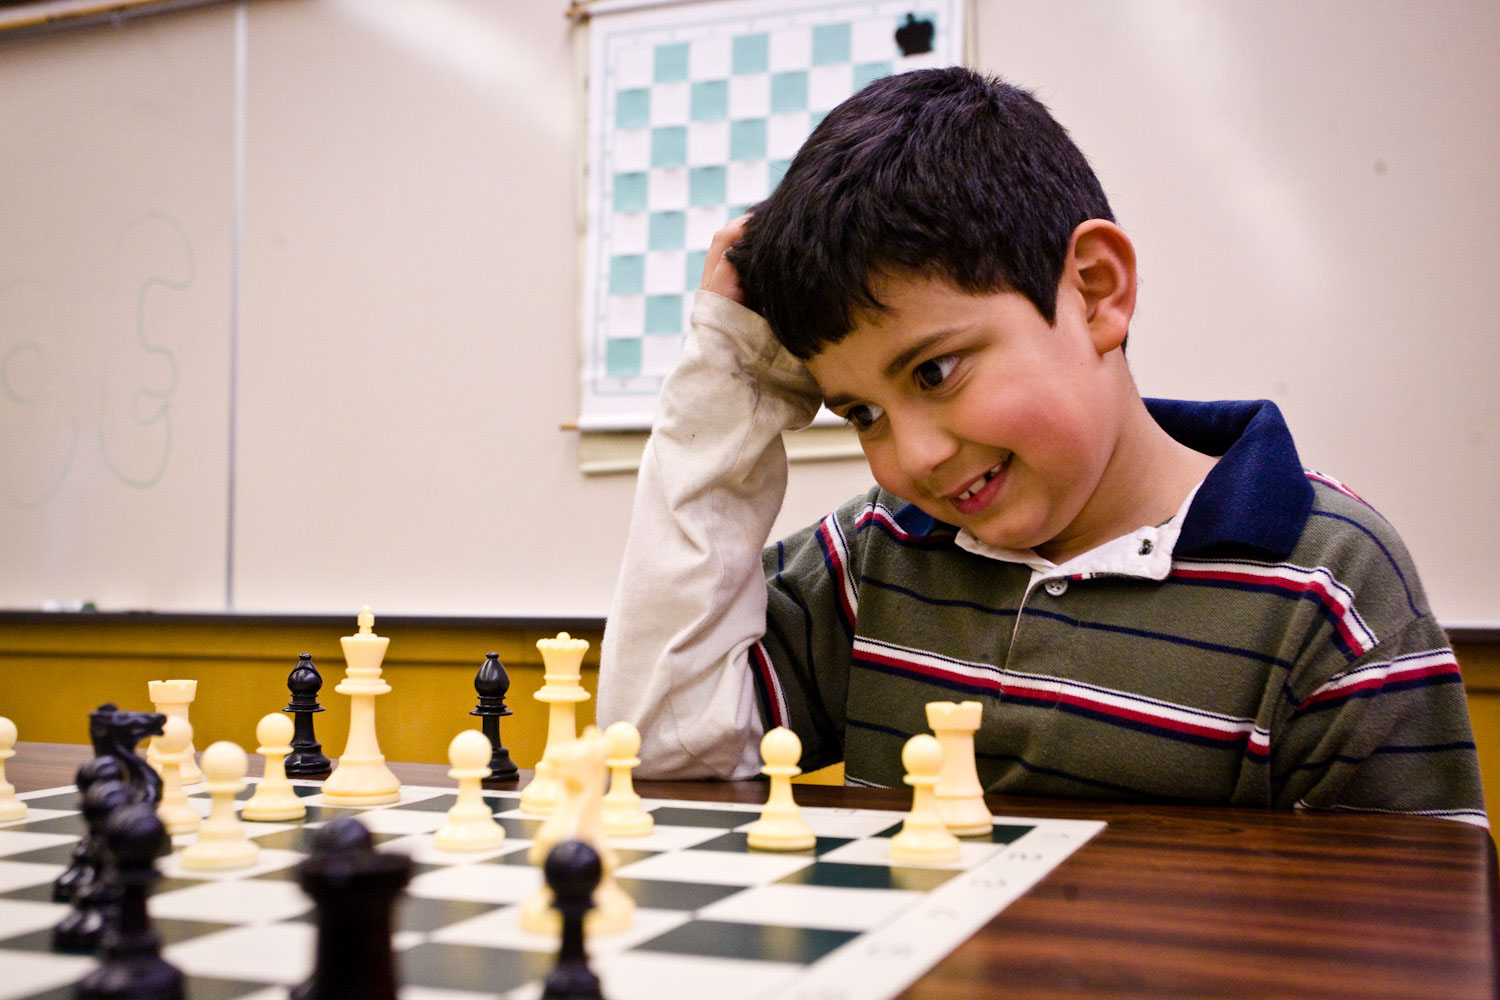 Brayan Moreno-Loa sits chess board scratching his head